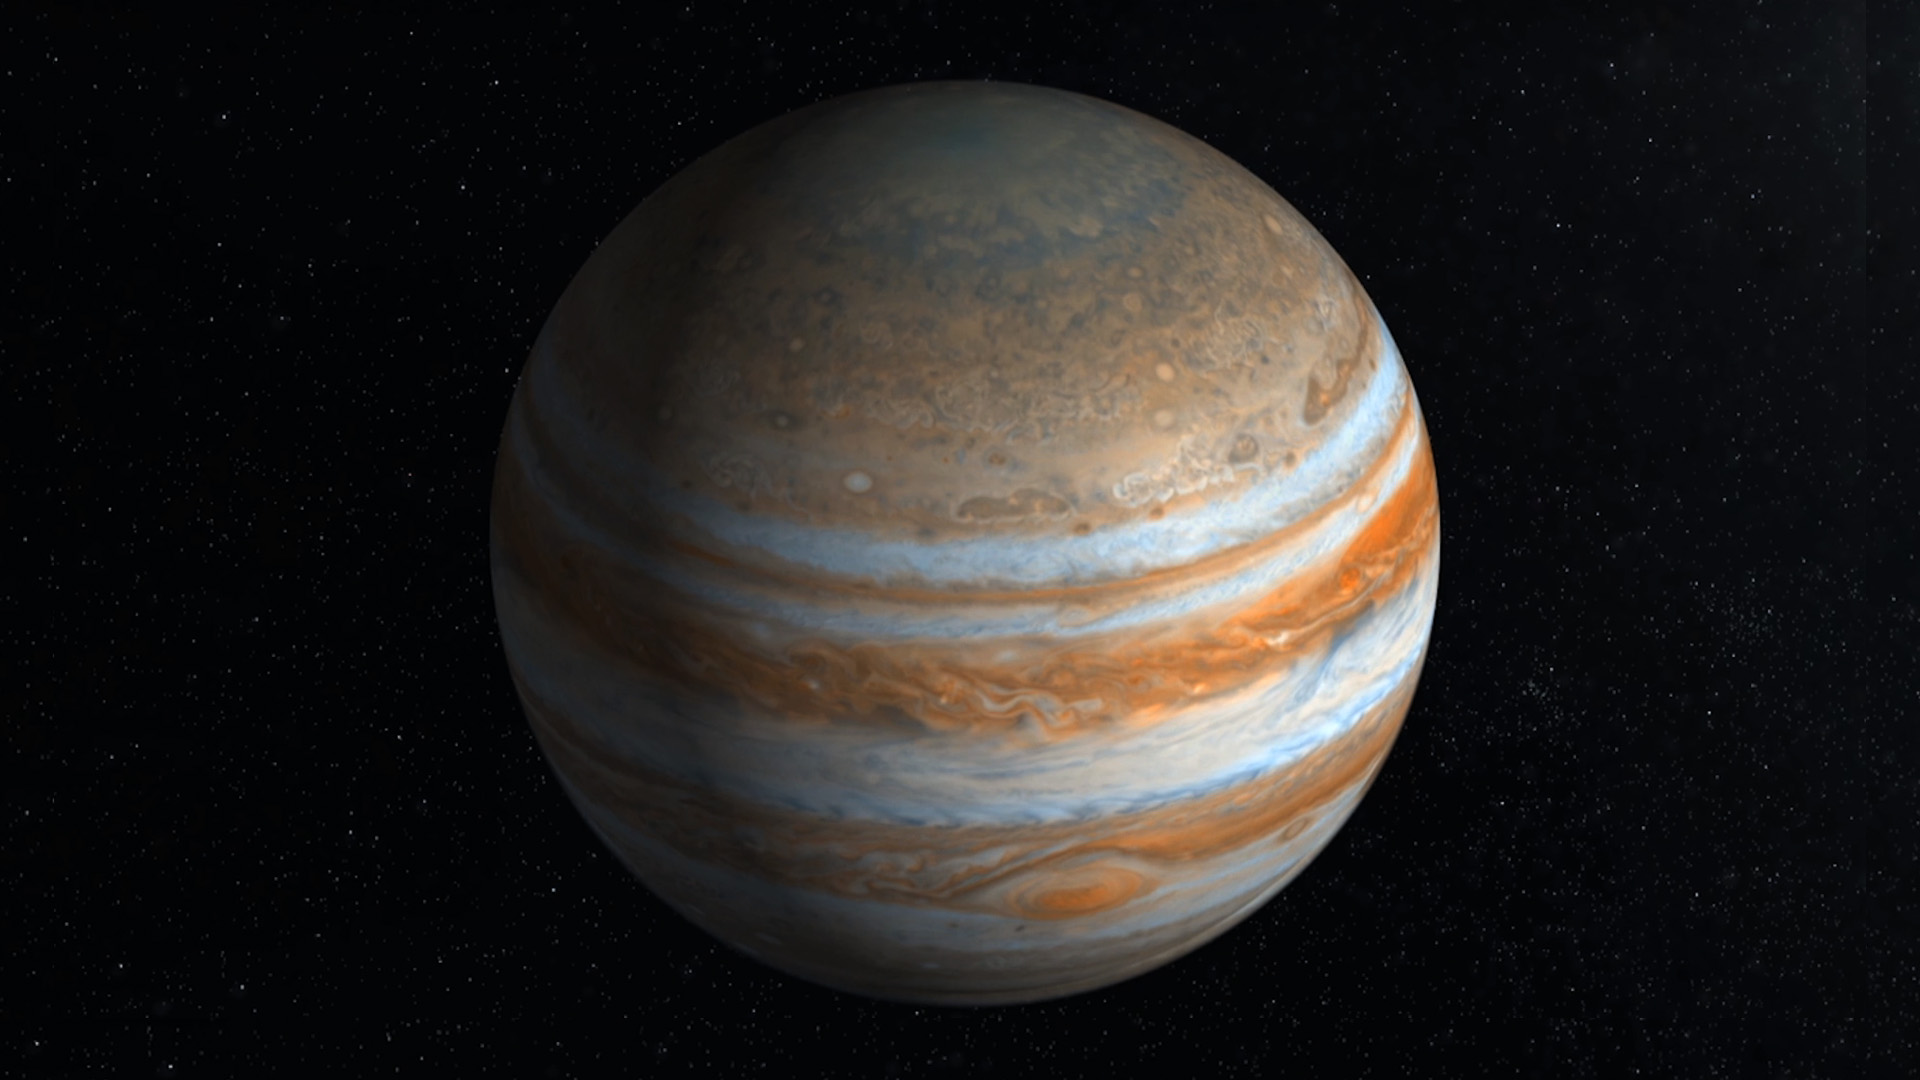 jupiter planet images - HD 1200×800